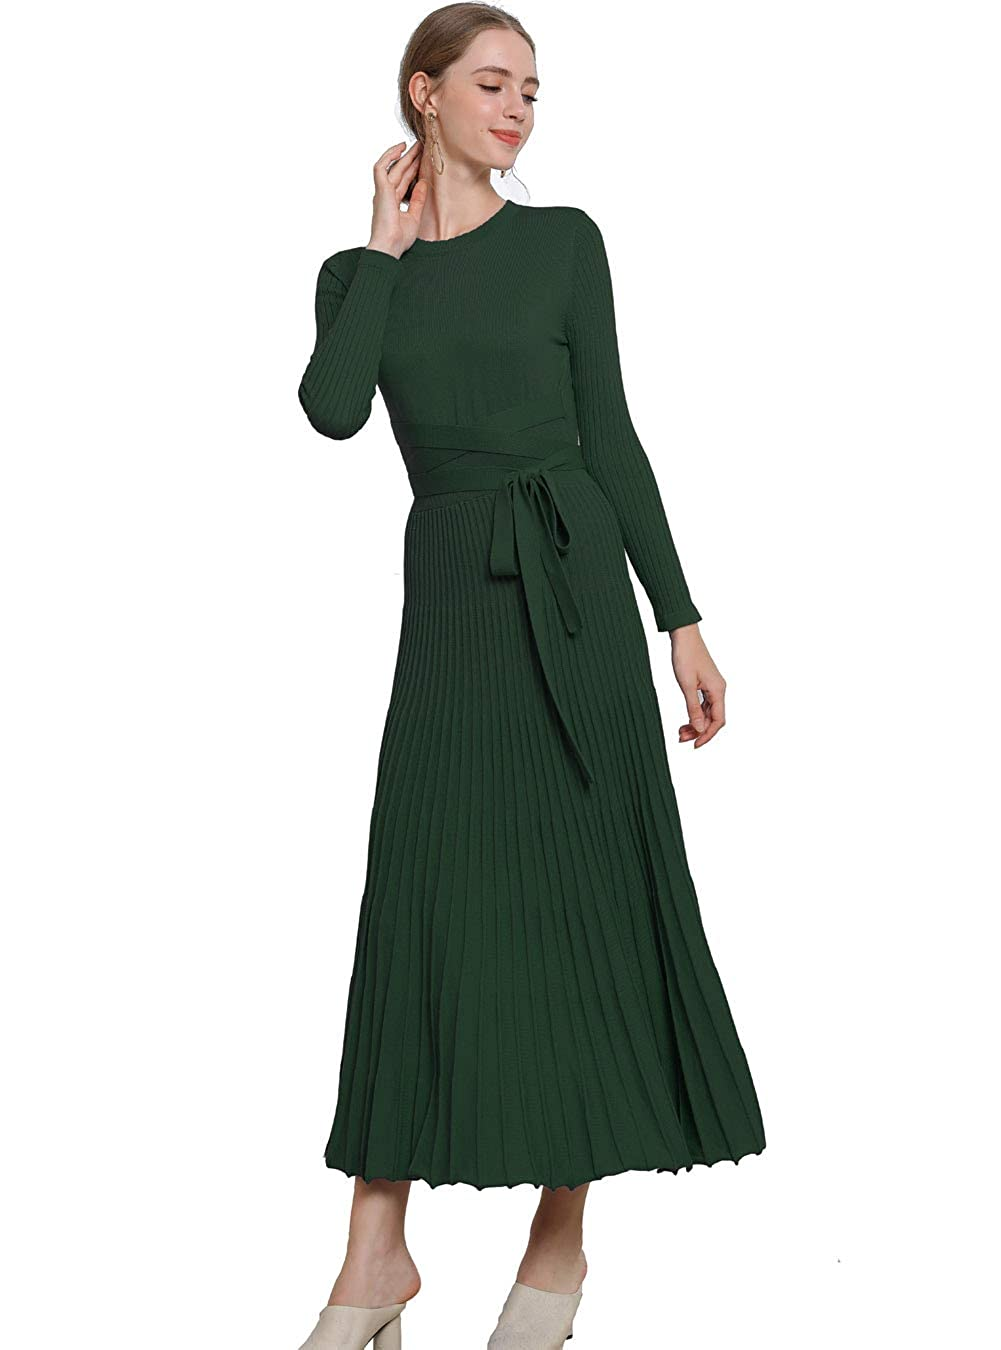 1930s Day Dresses, Afternoon Dresses History FINCATI Long Sweater Dress Spring Autumn Cashmere Belt Fitted Waist Big Swing Midi Dresses $49.00 AT vintagedancer.com